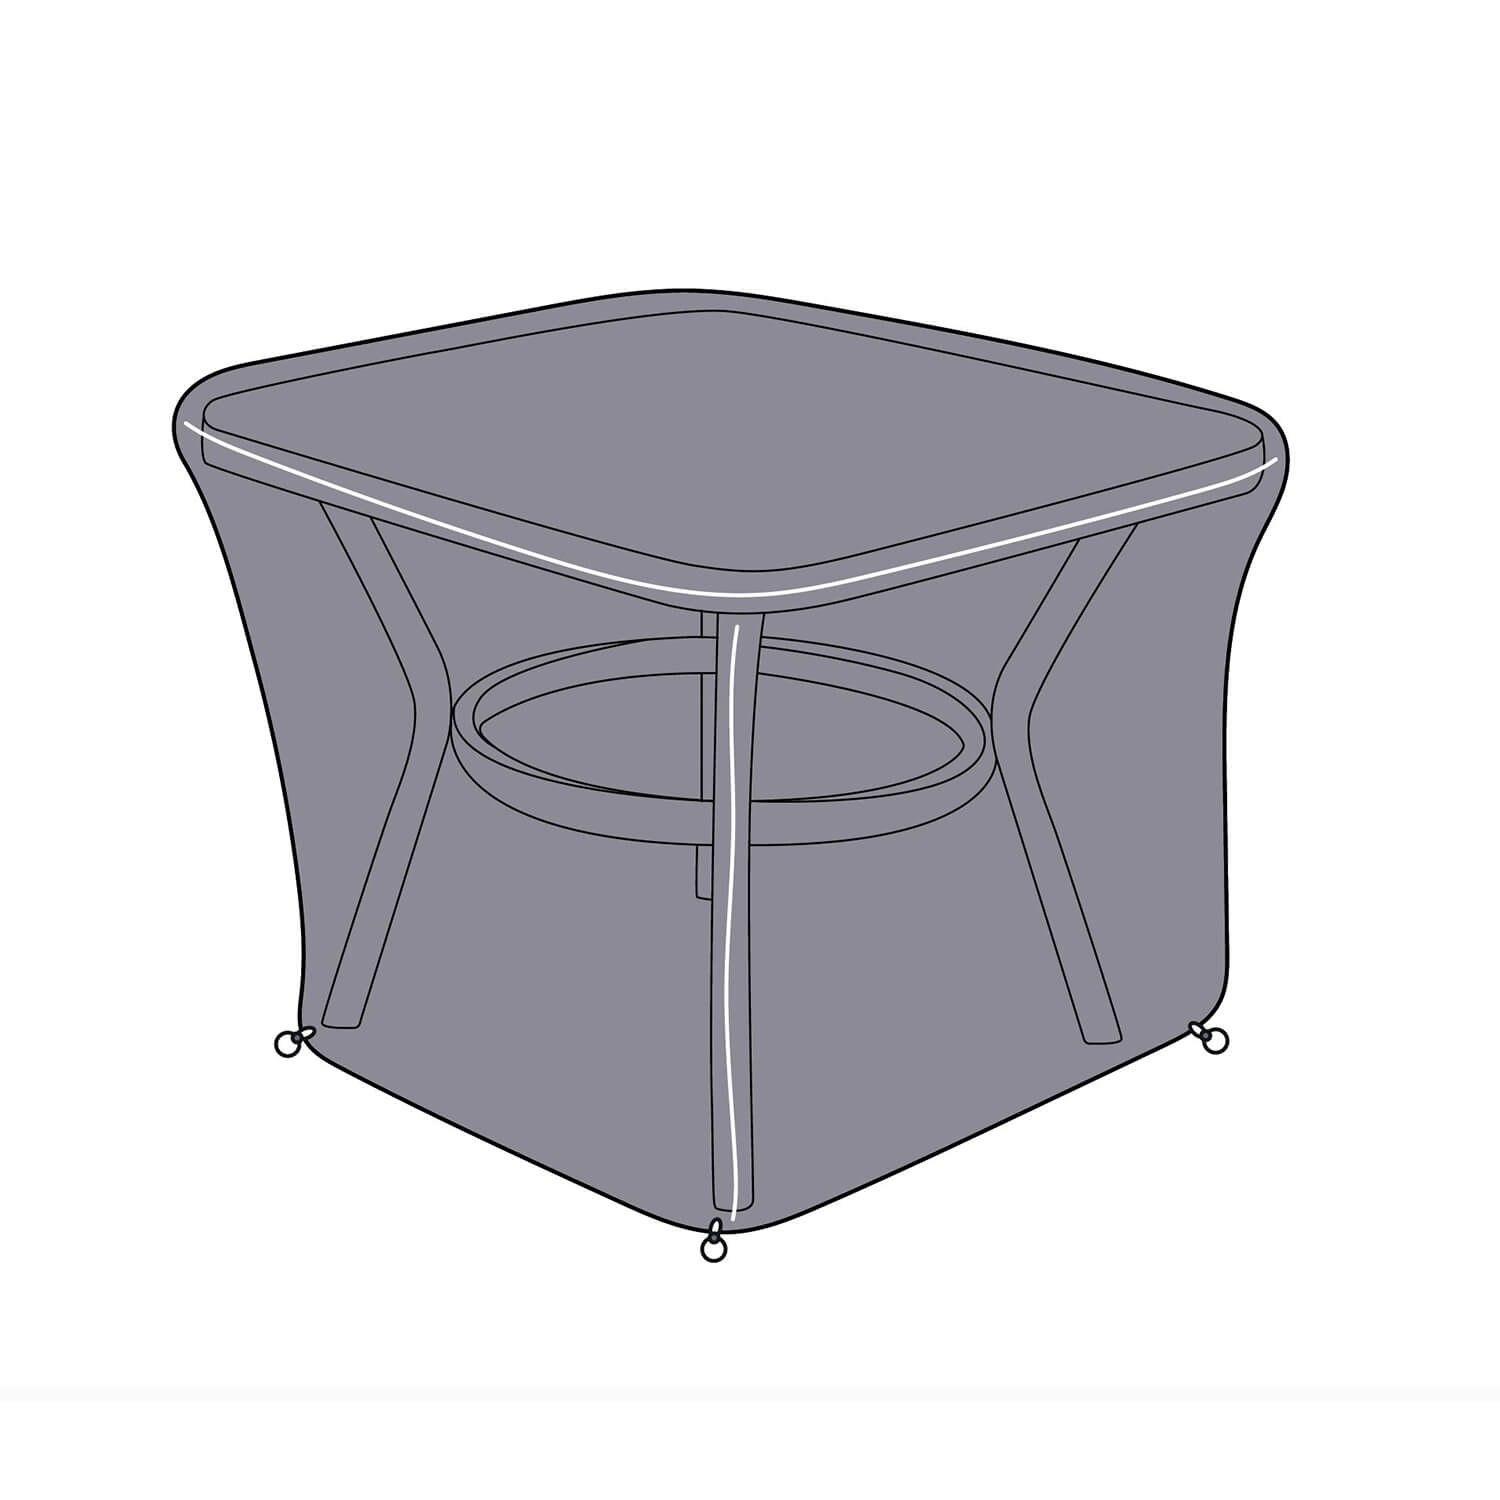 Image of Jamie Oliver Corner Grilling Outdoor Cover